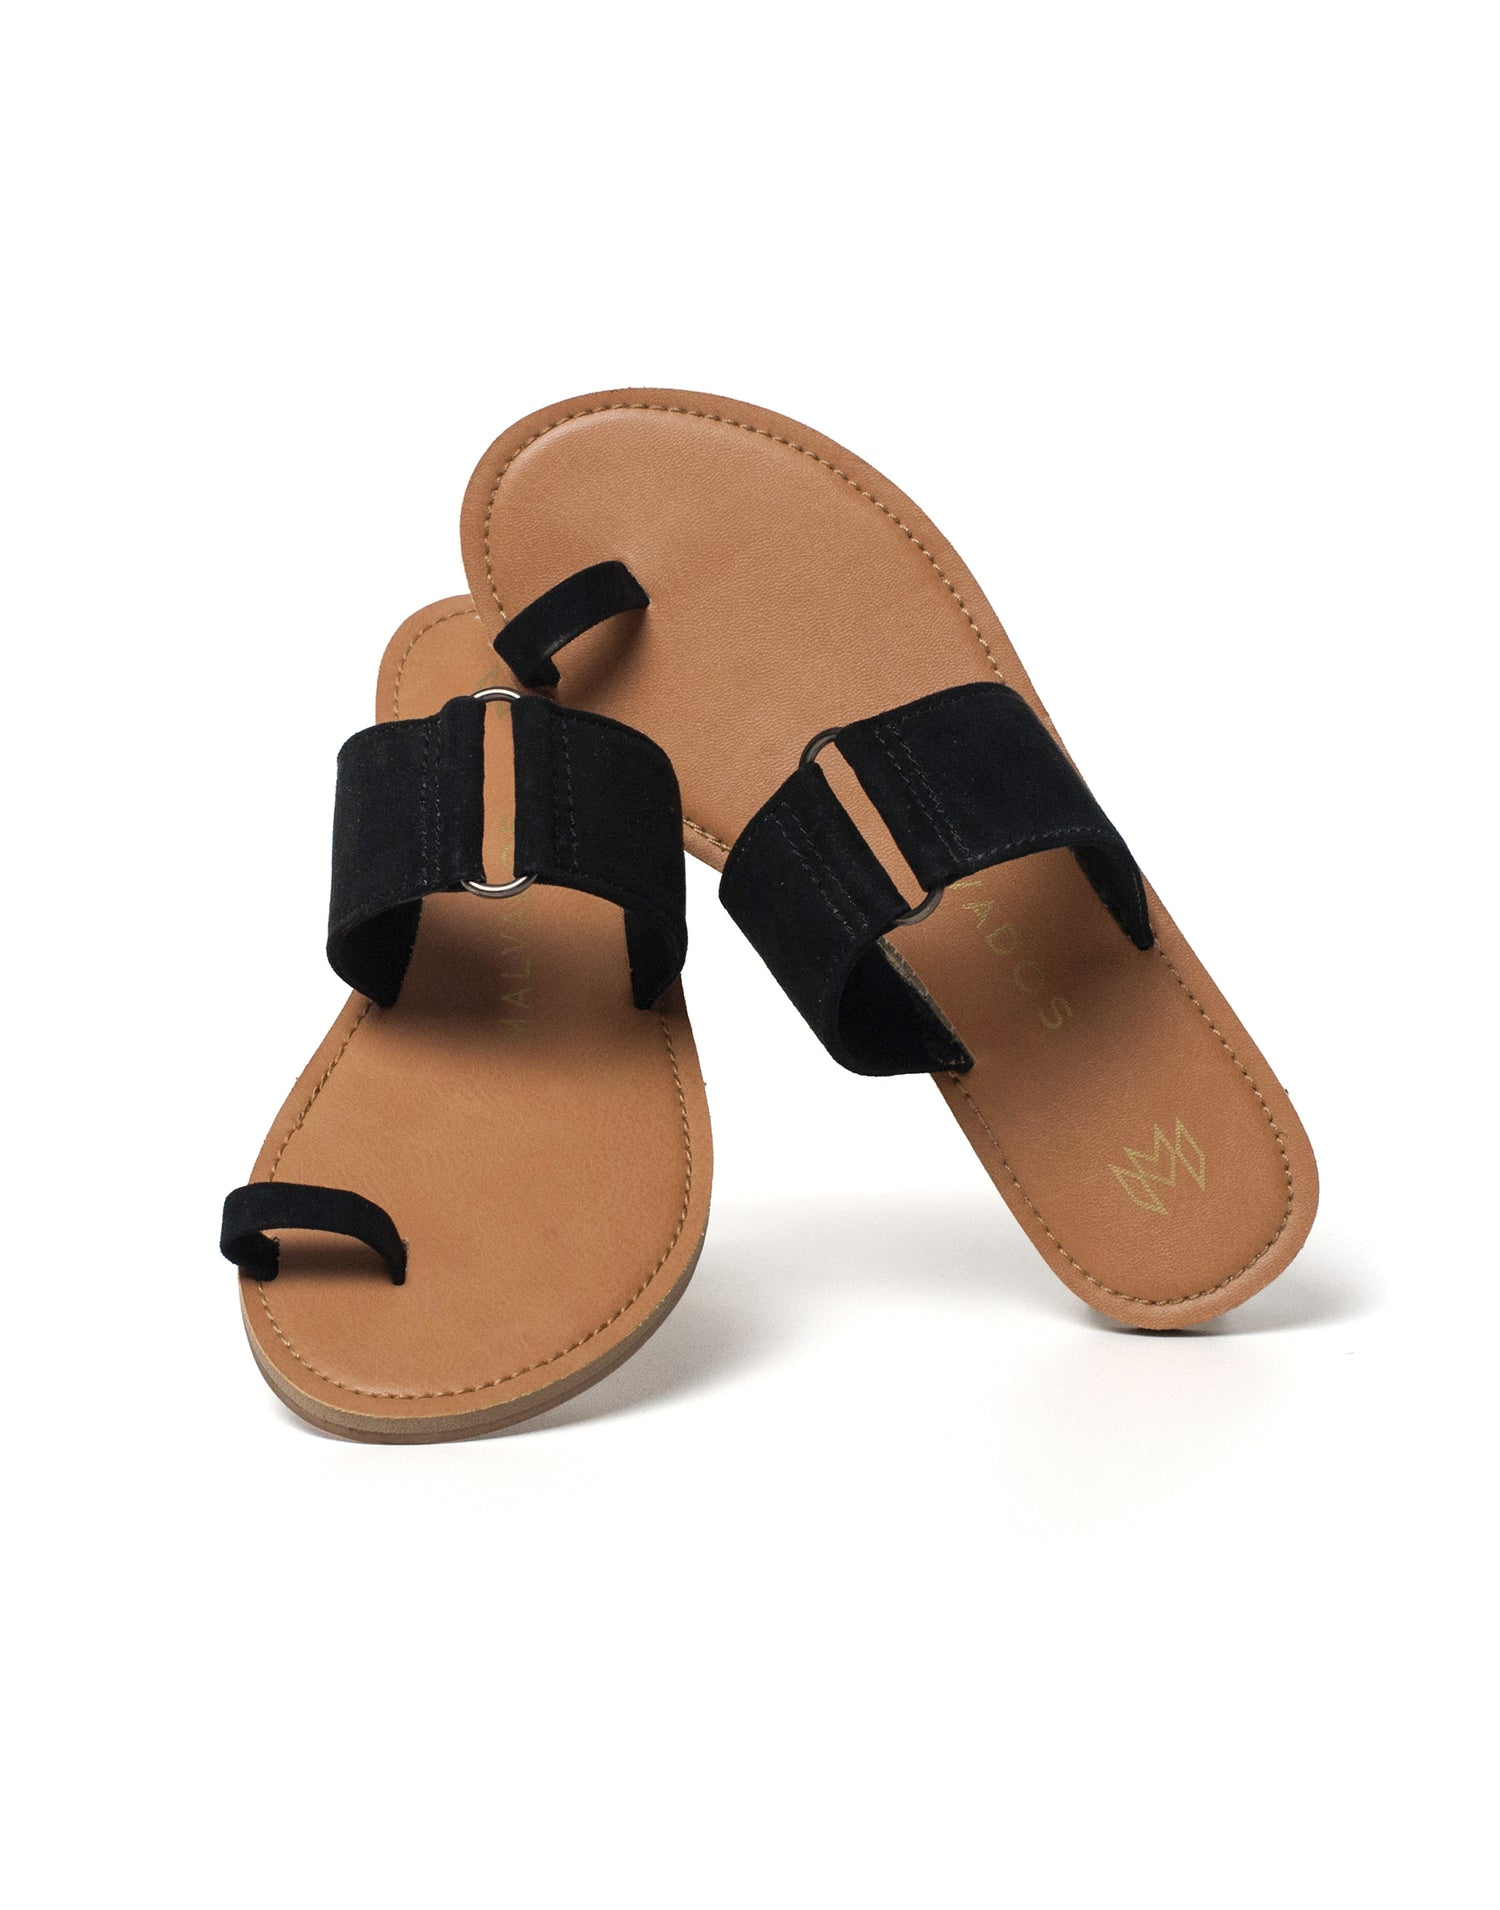 Malvados Icon Tori Sandal in Black - alternate product view